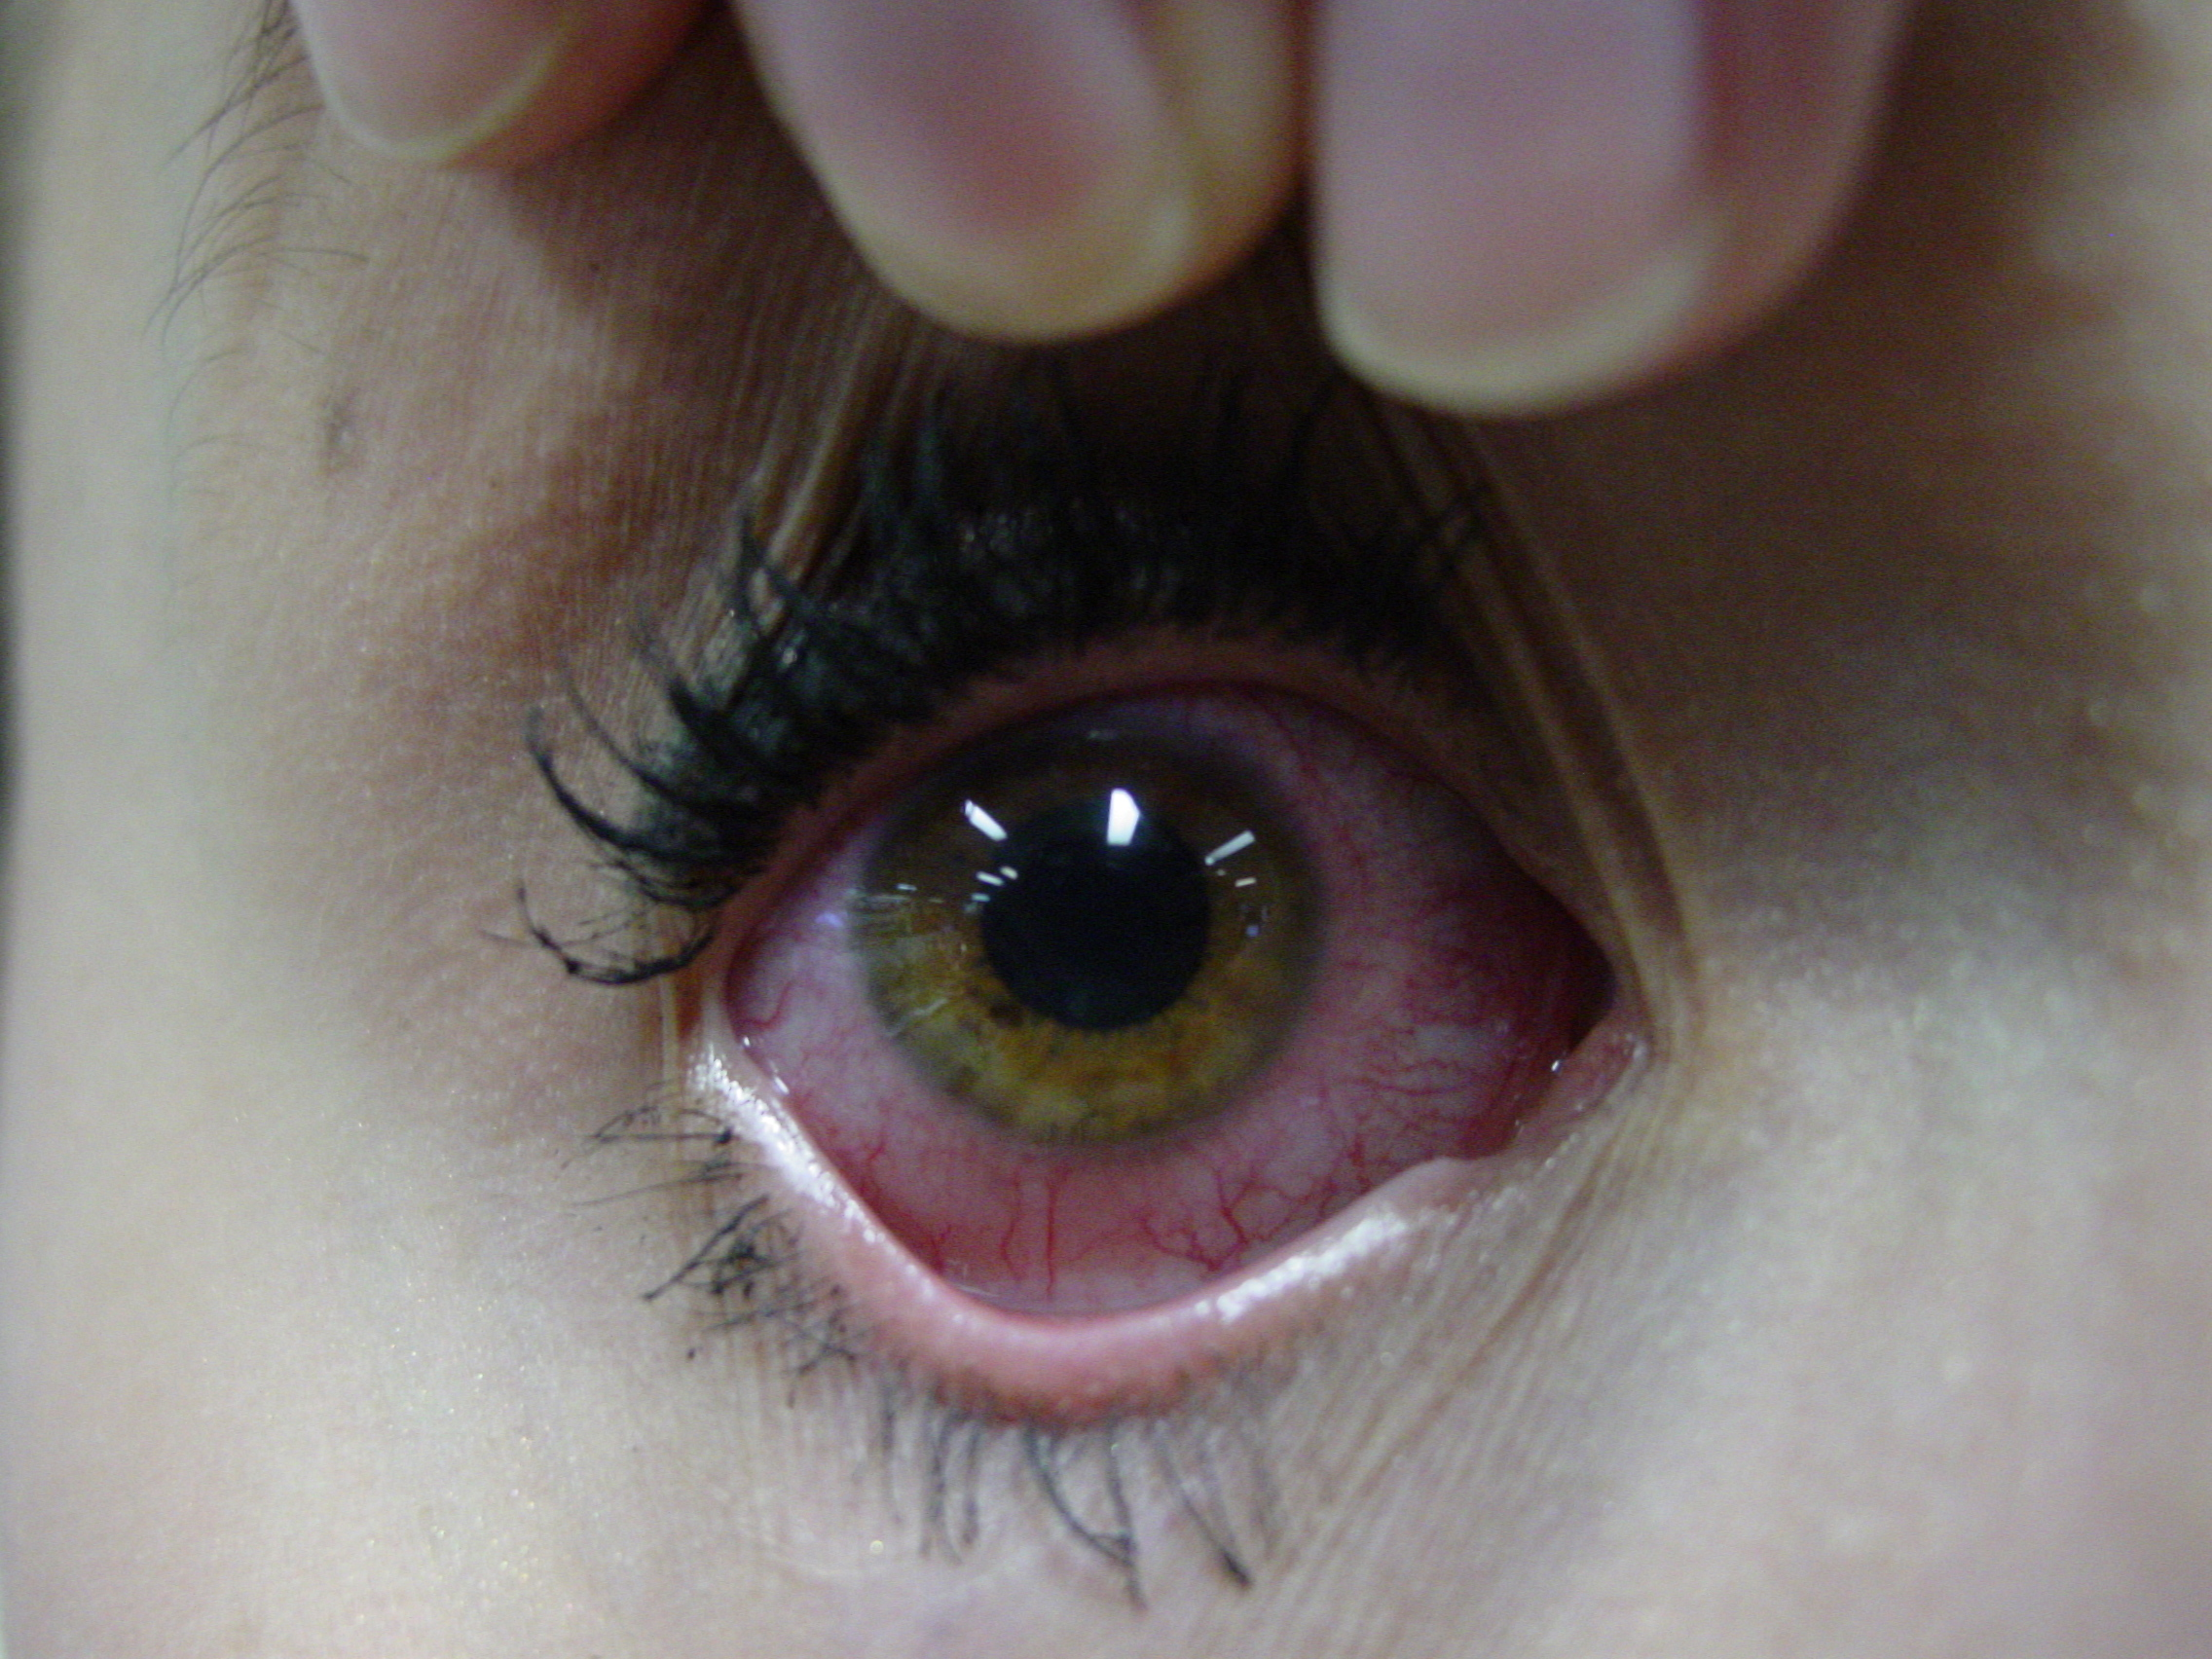 right eye, affected eye